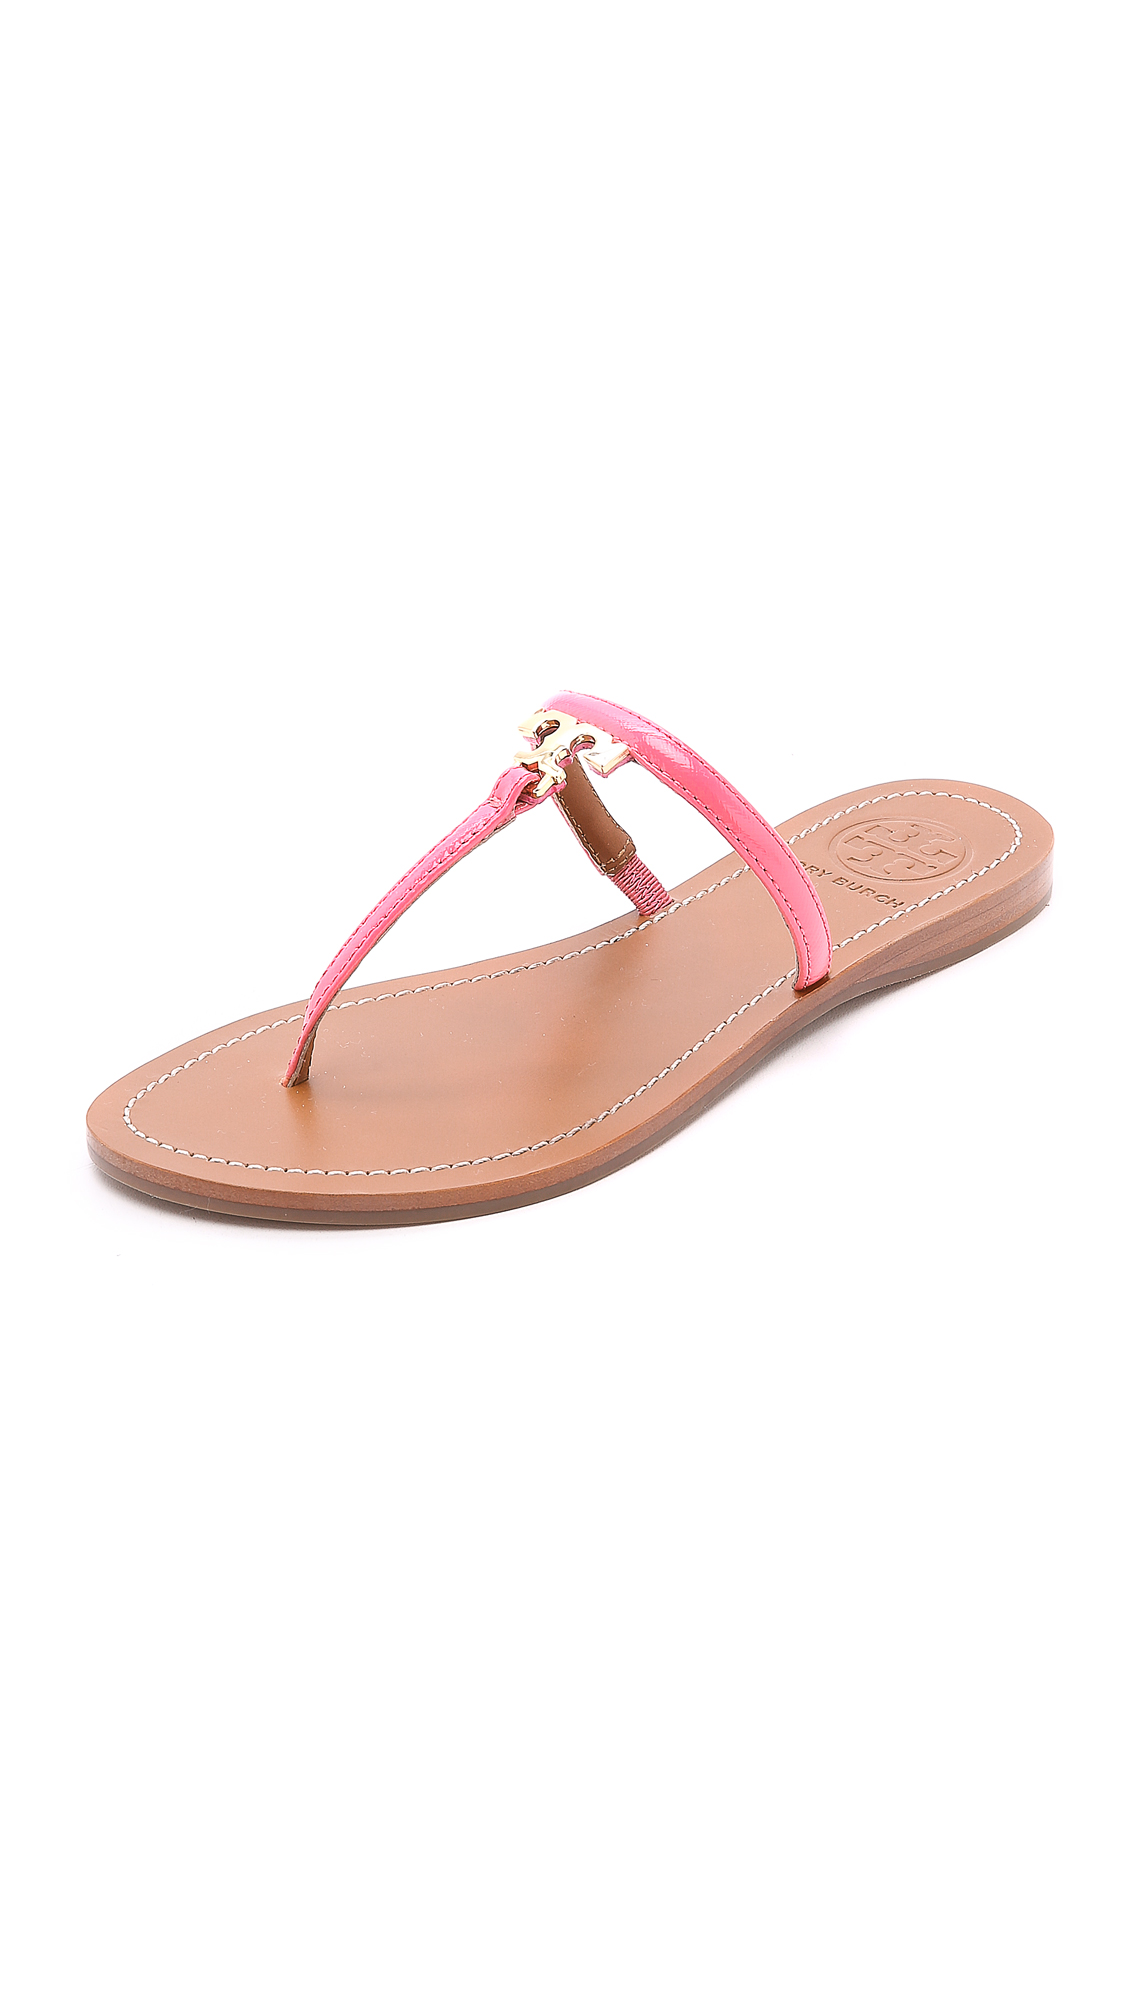 6f91deb82 Tory Burch T Logo Flat Thong Sandals